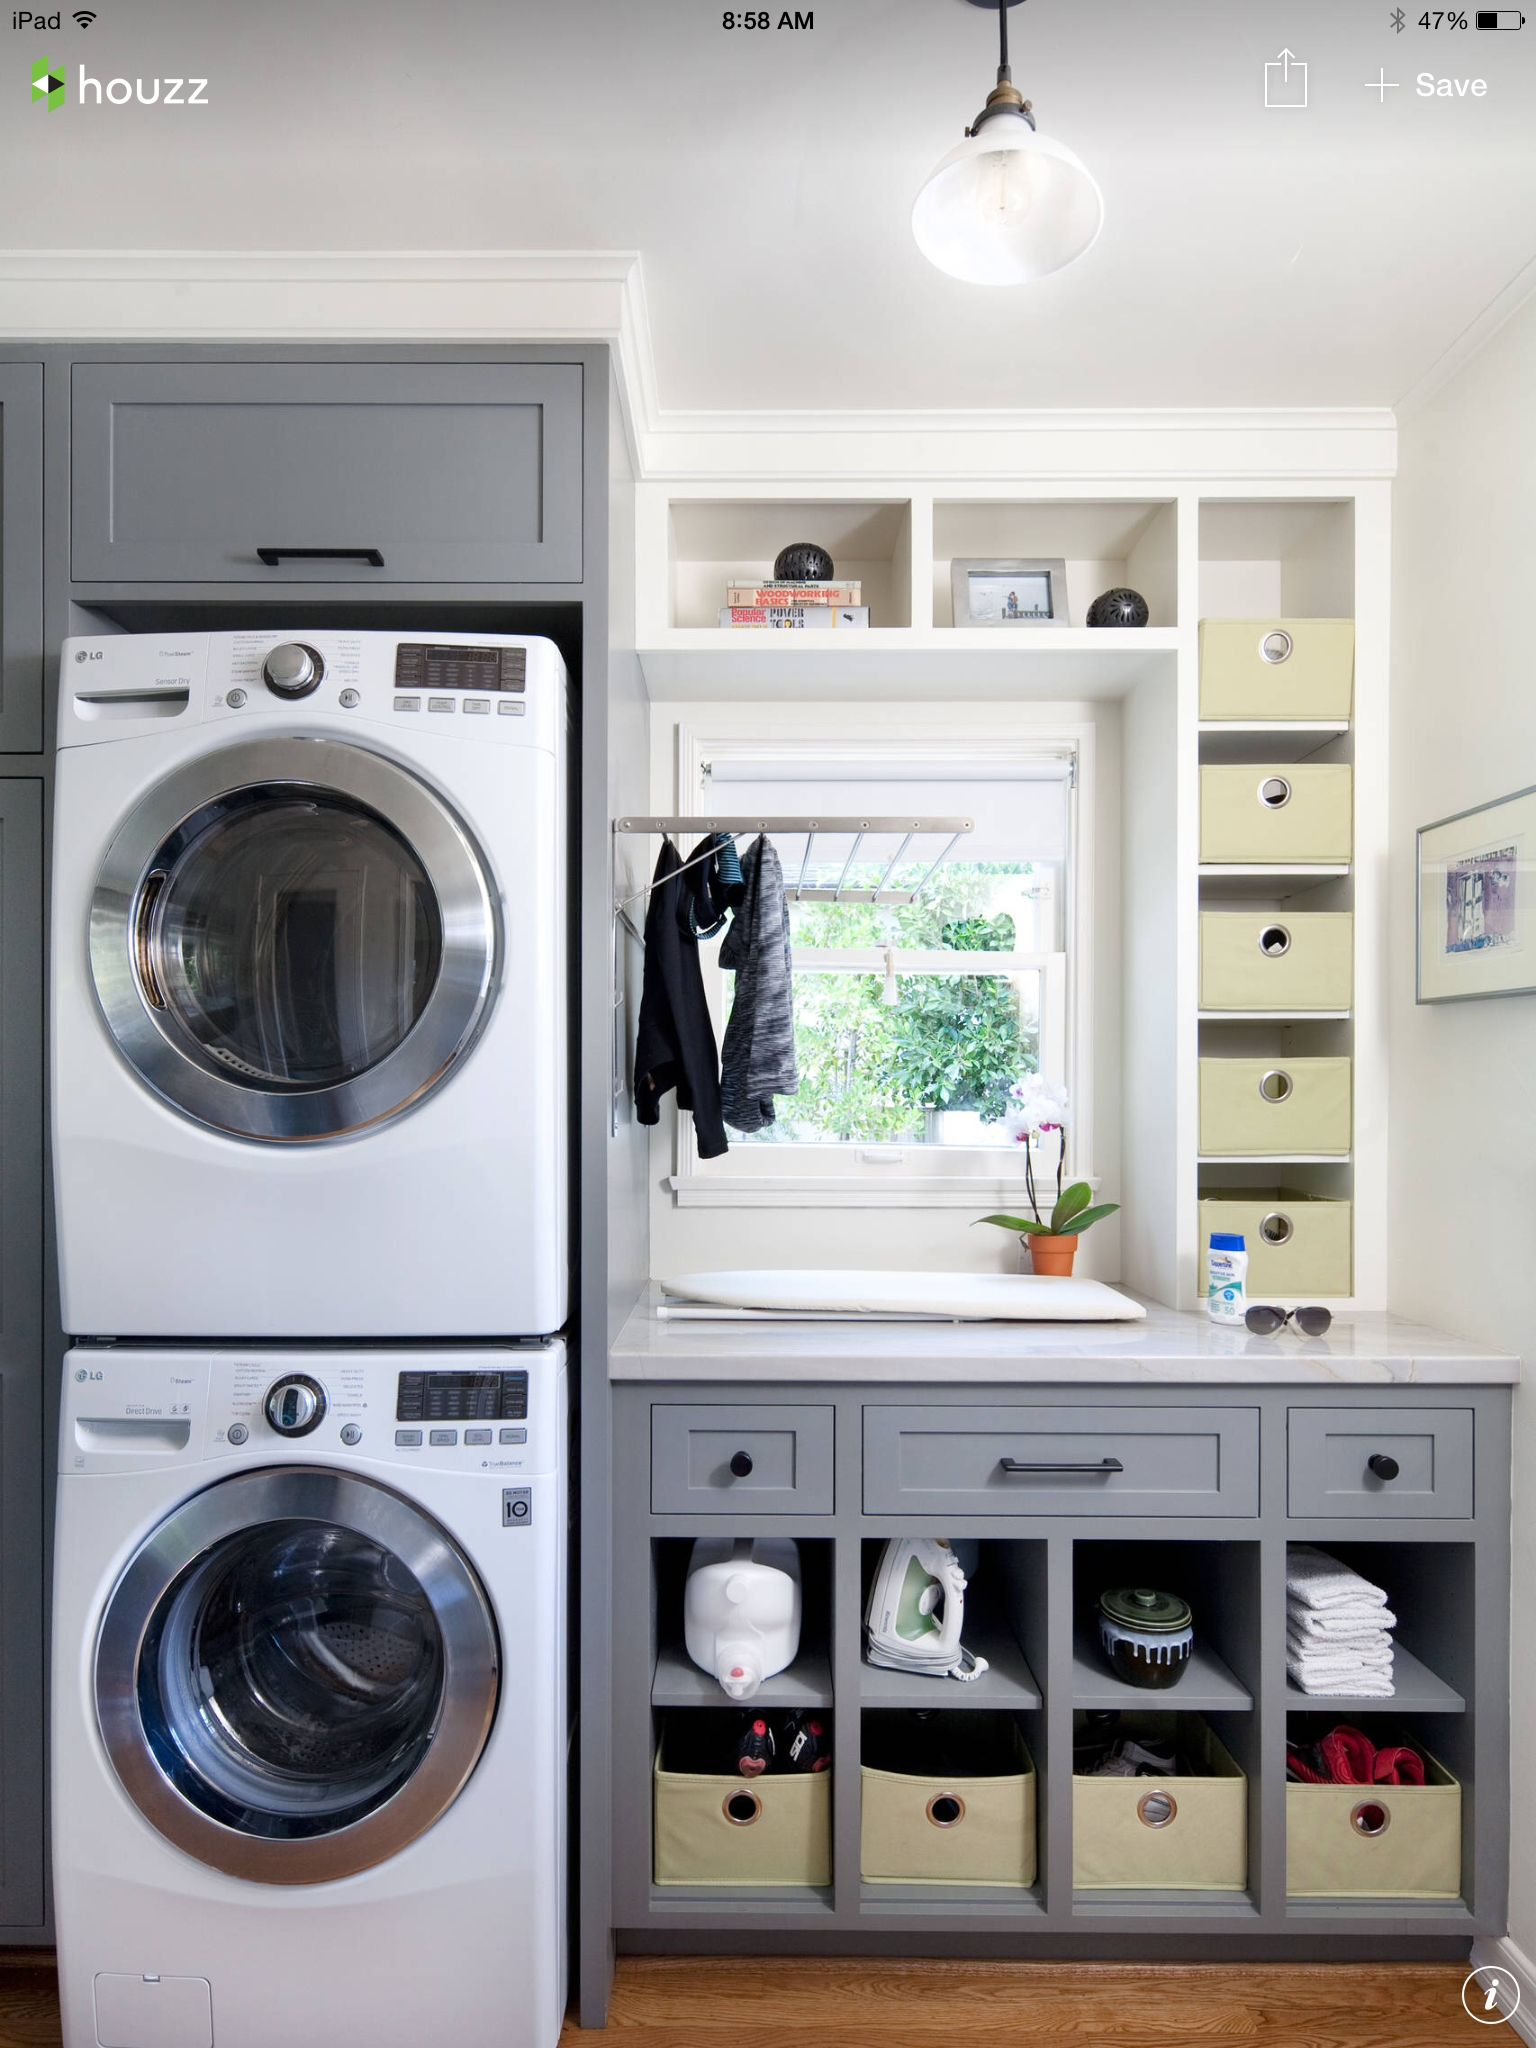 Laundry Room Love The Pull Down Drying Rack And Ironing Board Grey Laundry Rooms Laundry Room Inspiration Laundry Room Design